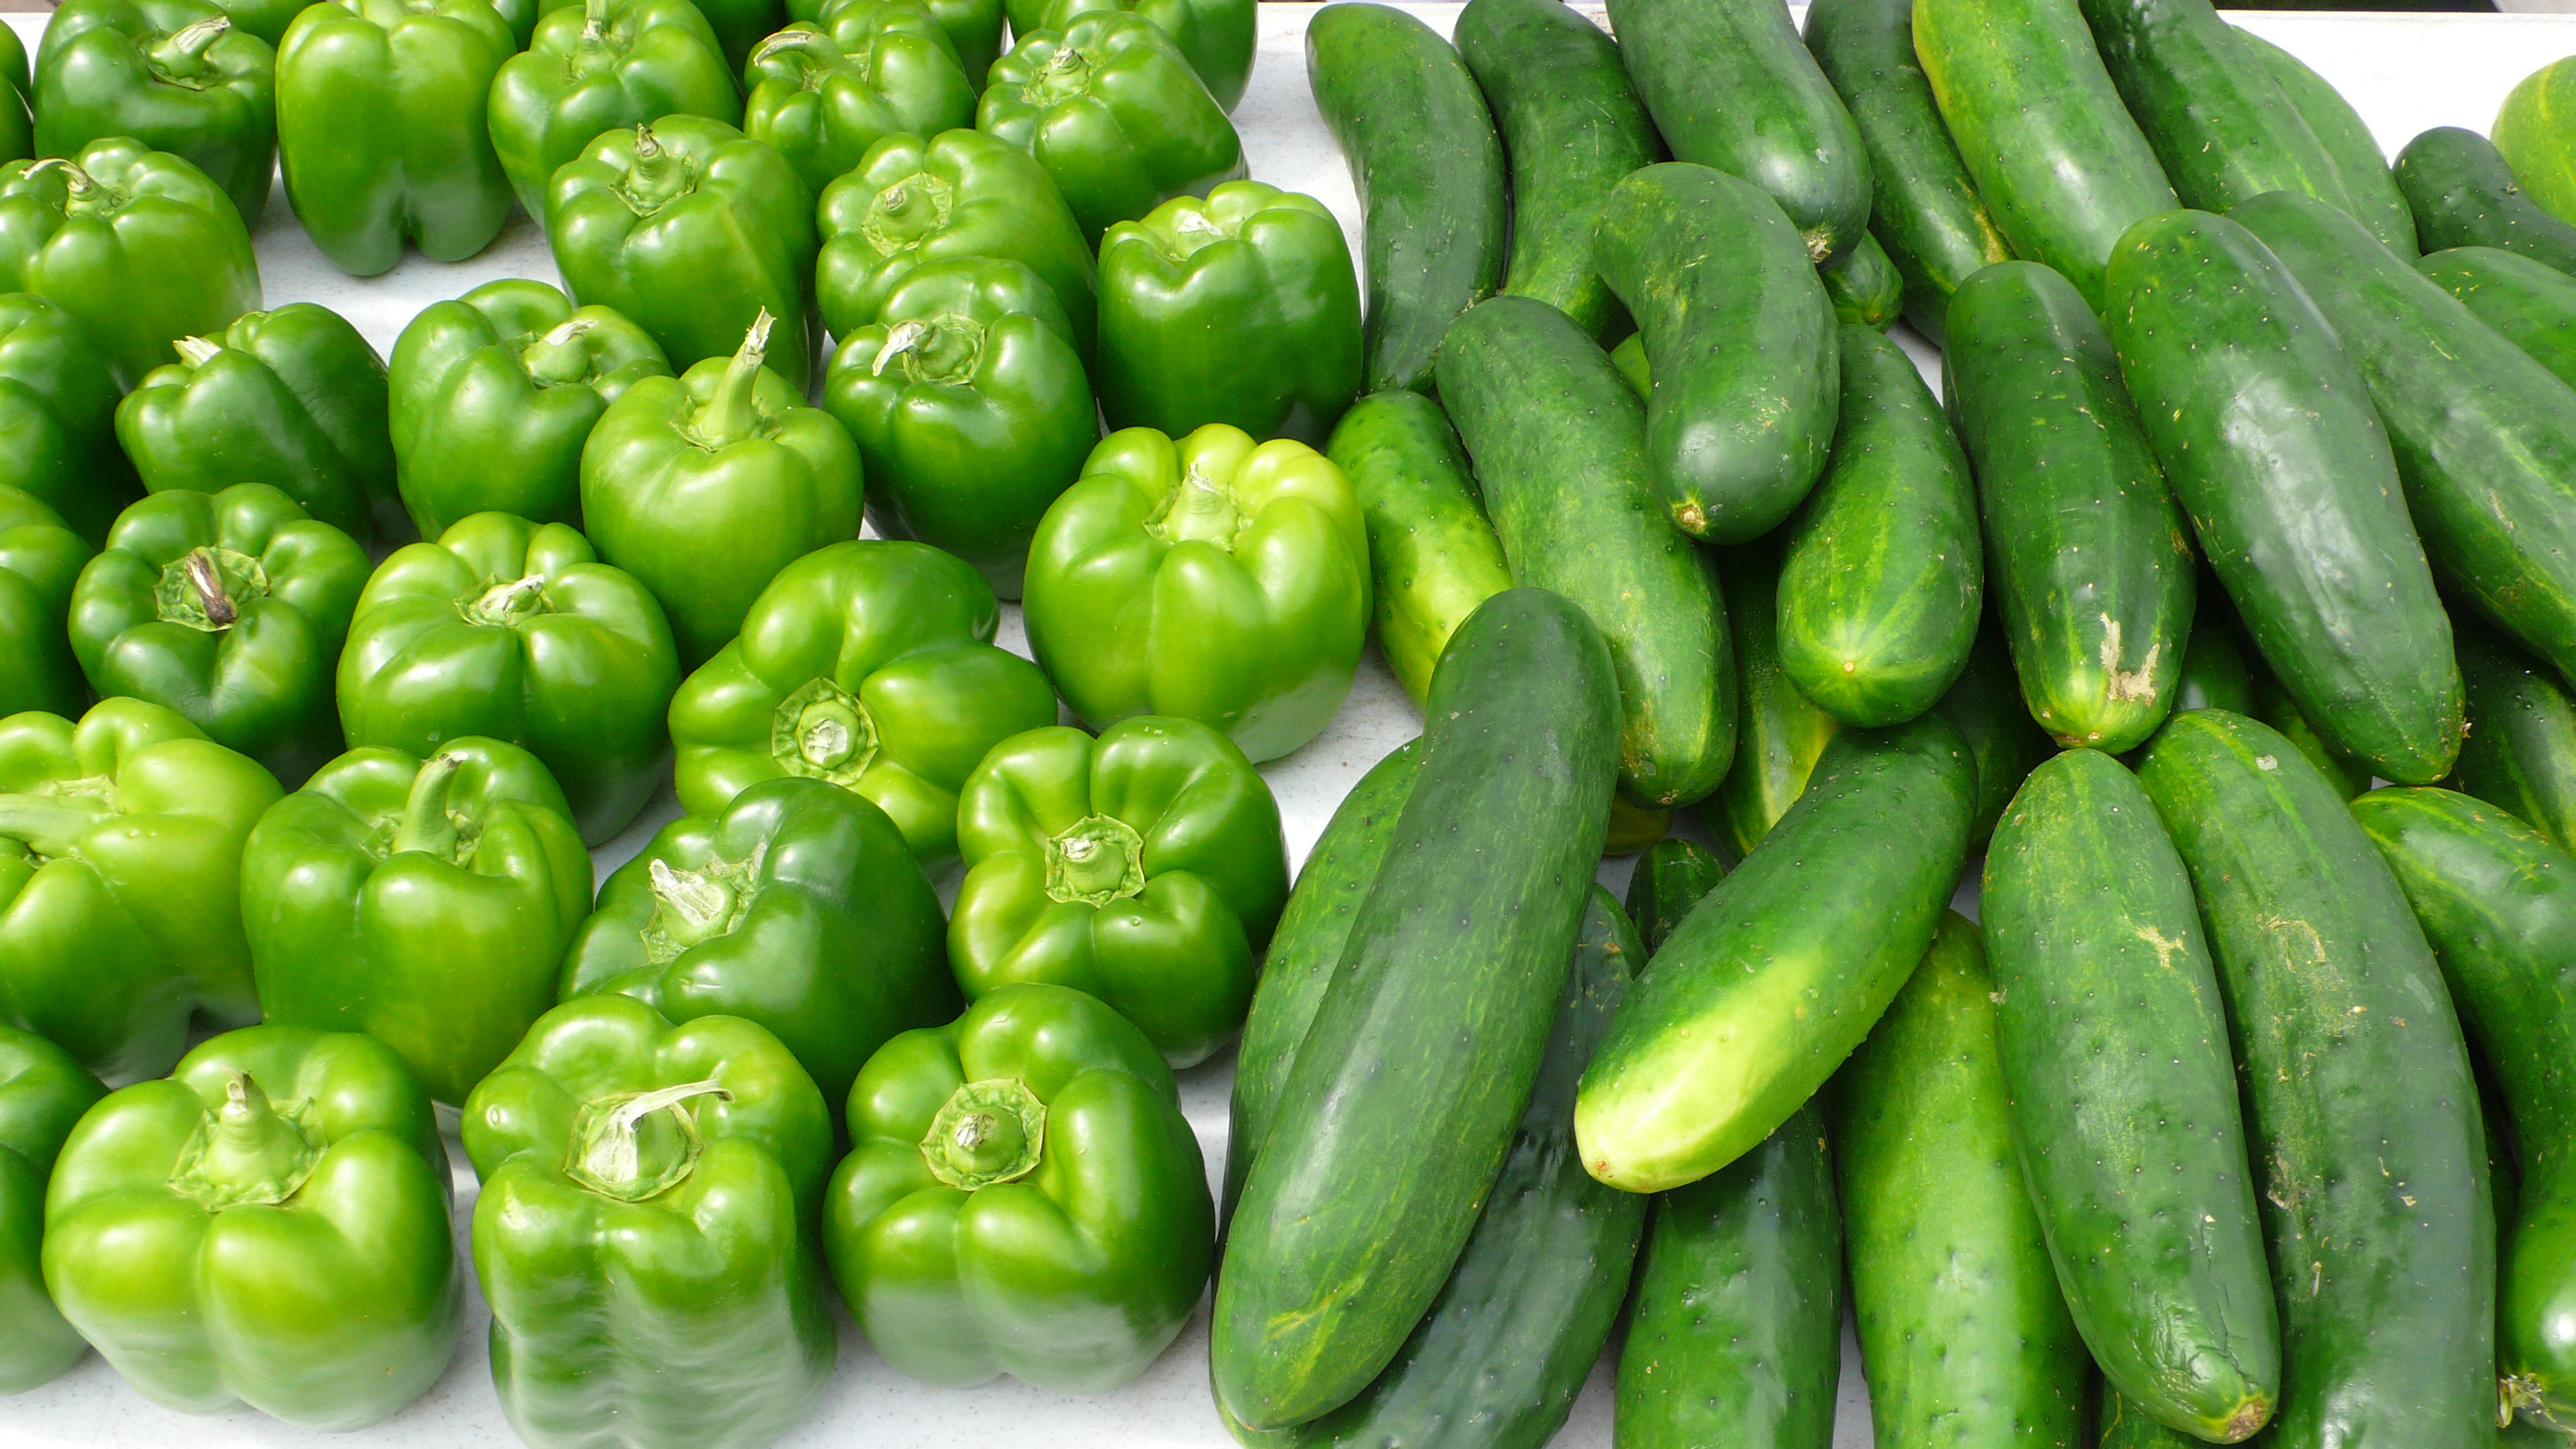 Peppers and Cucumbers